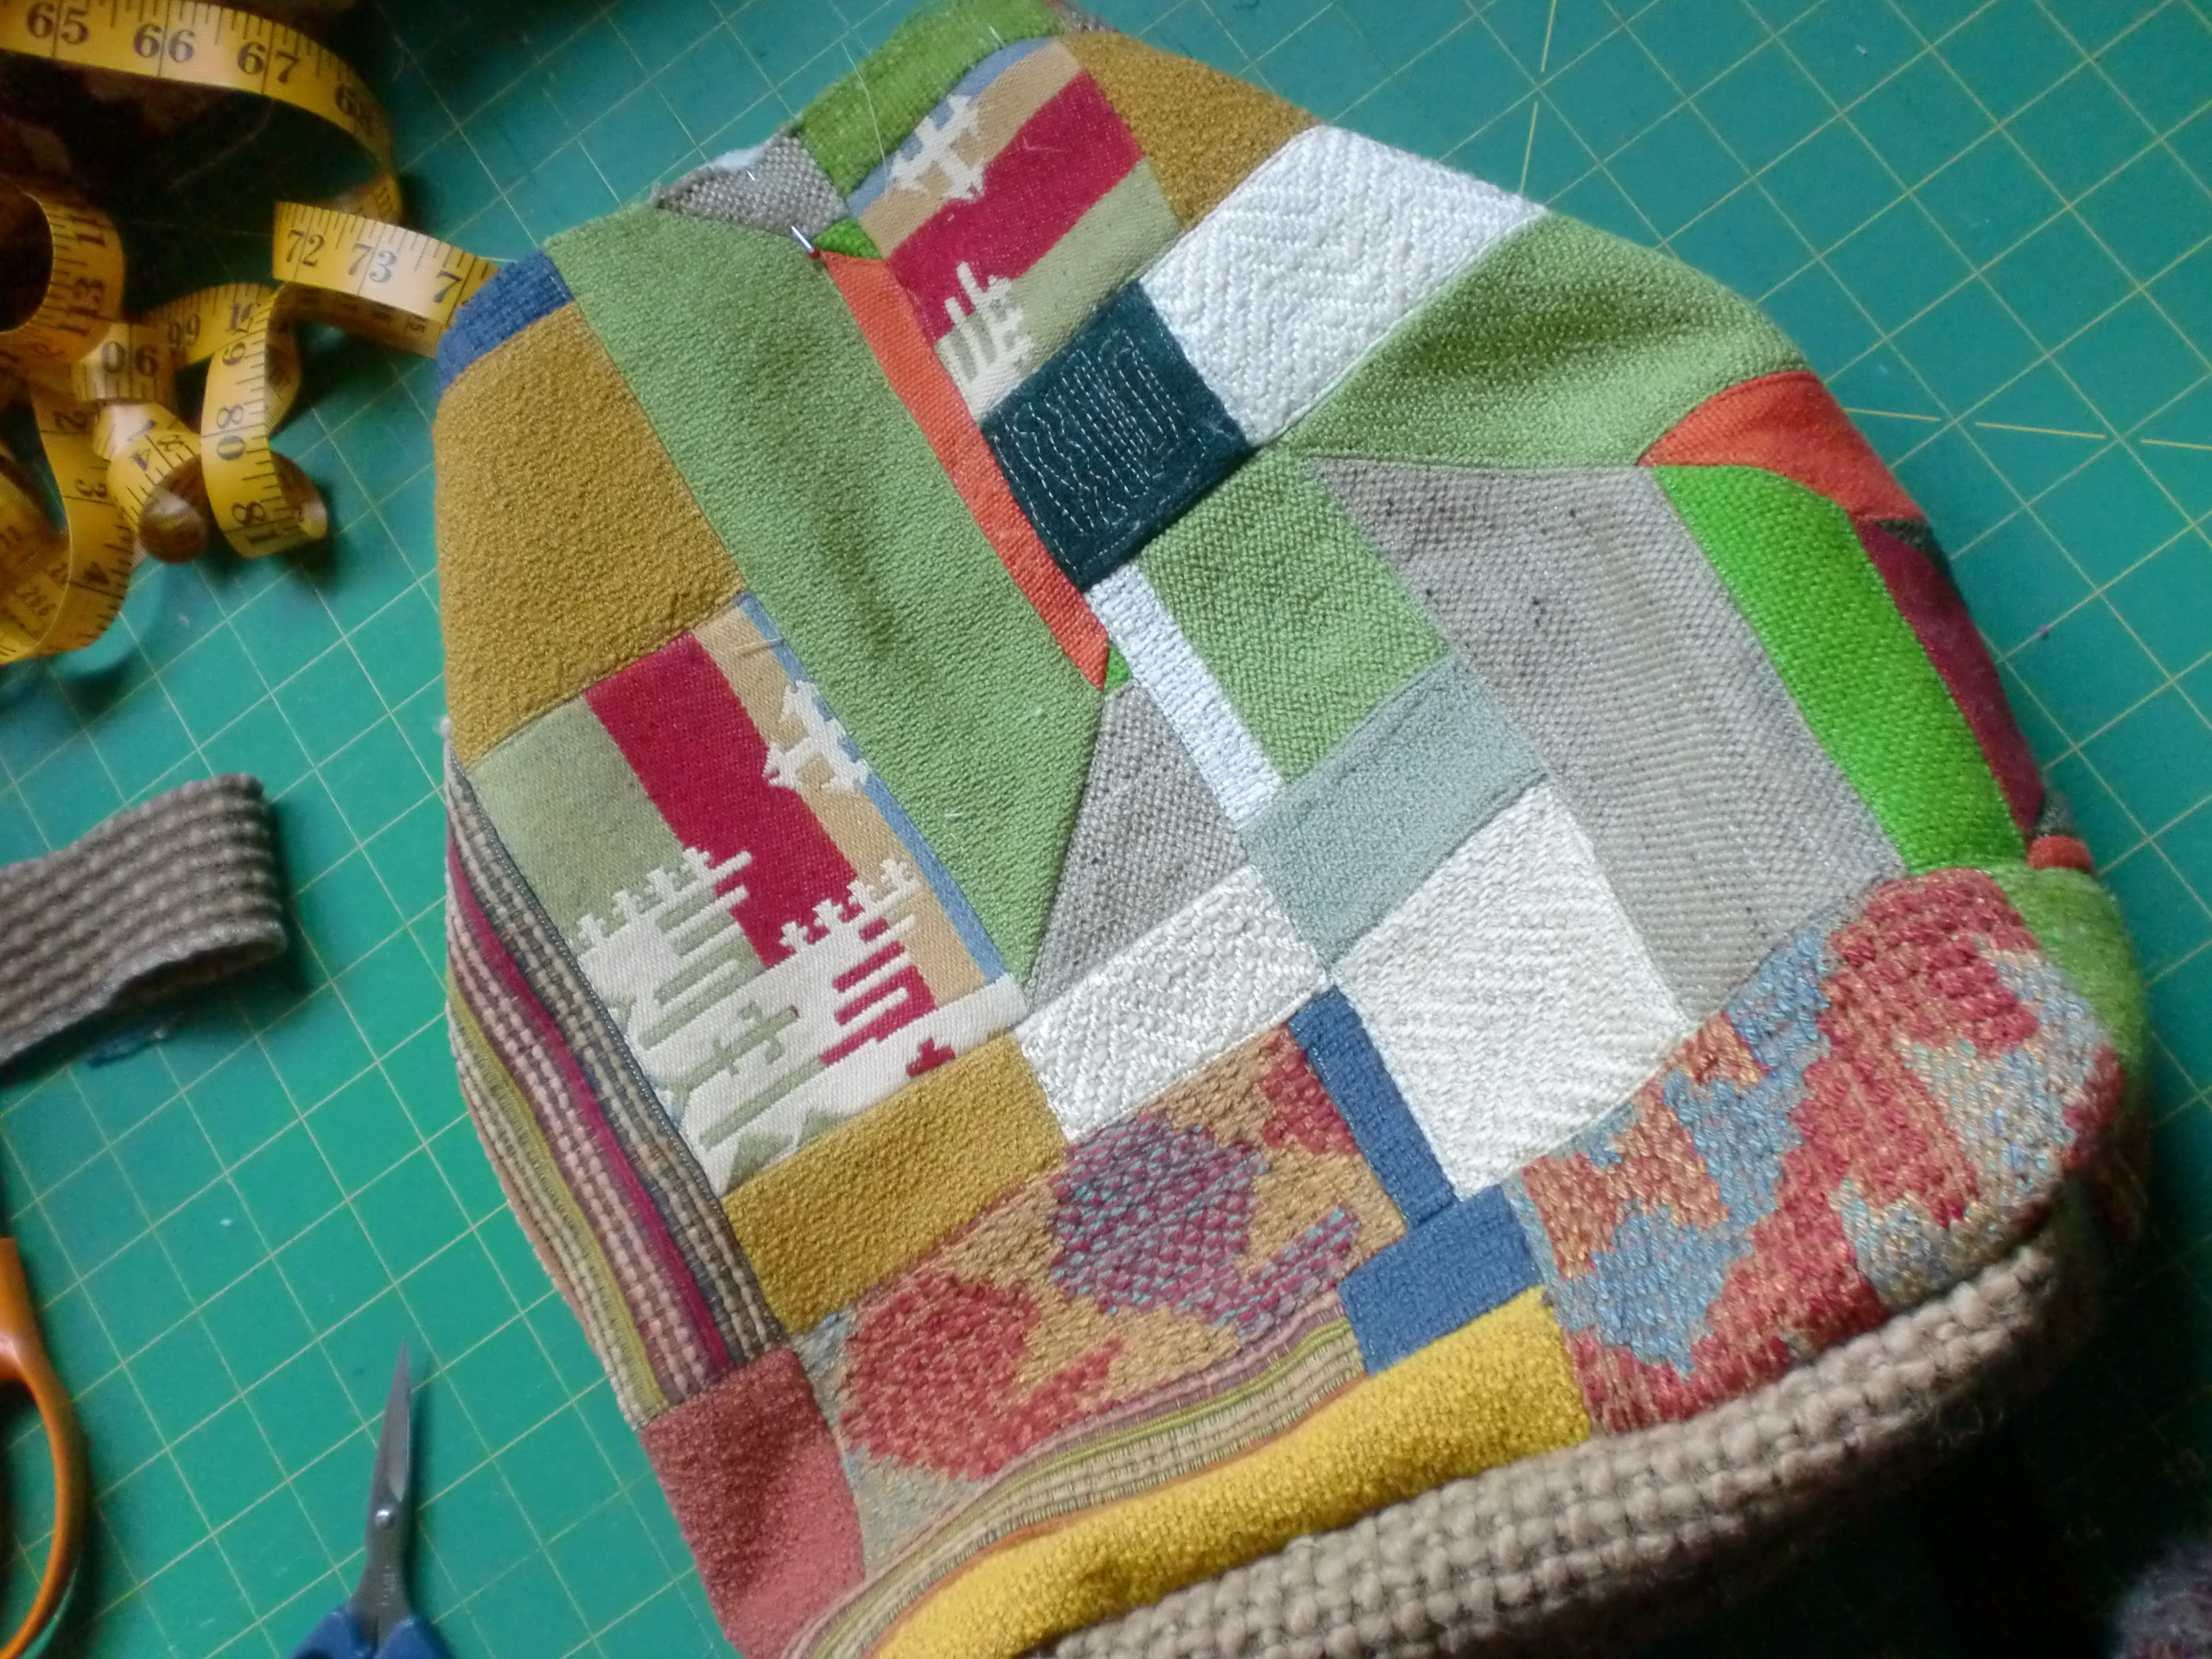 dimensional patchwork upholstery fabric taking shape